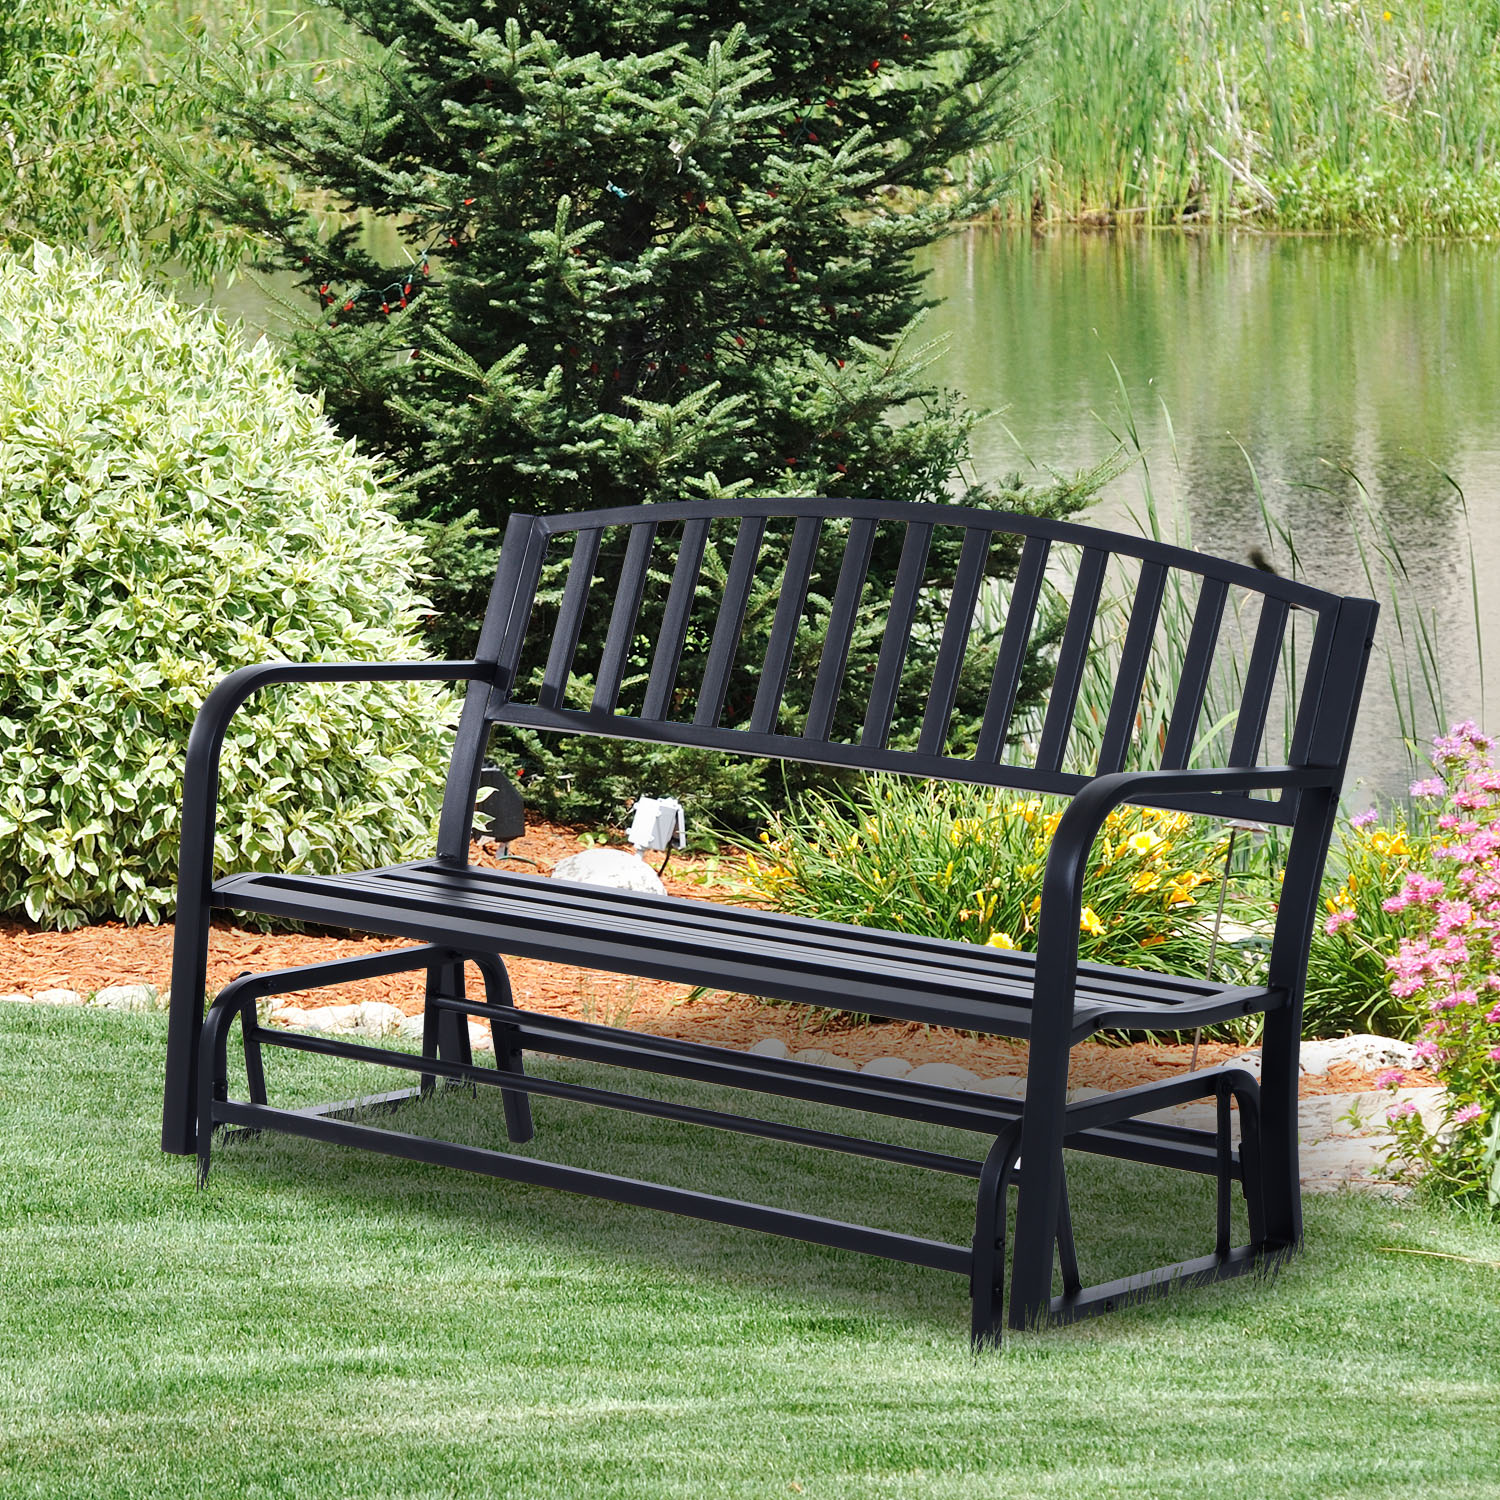 Phenomenal Details About Outsunny Bench Glider Rocking Chair Outdoor Patio Garden Furniture Deck Loveseat Caraccident5 Cool Chair Designs And Ideas Caraccident5Info